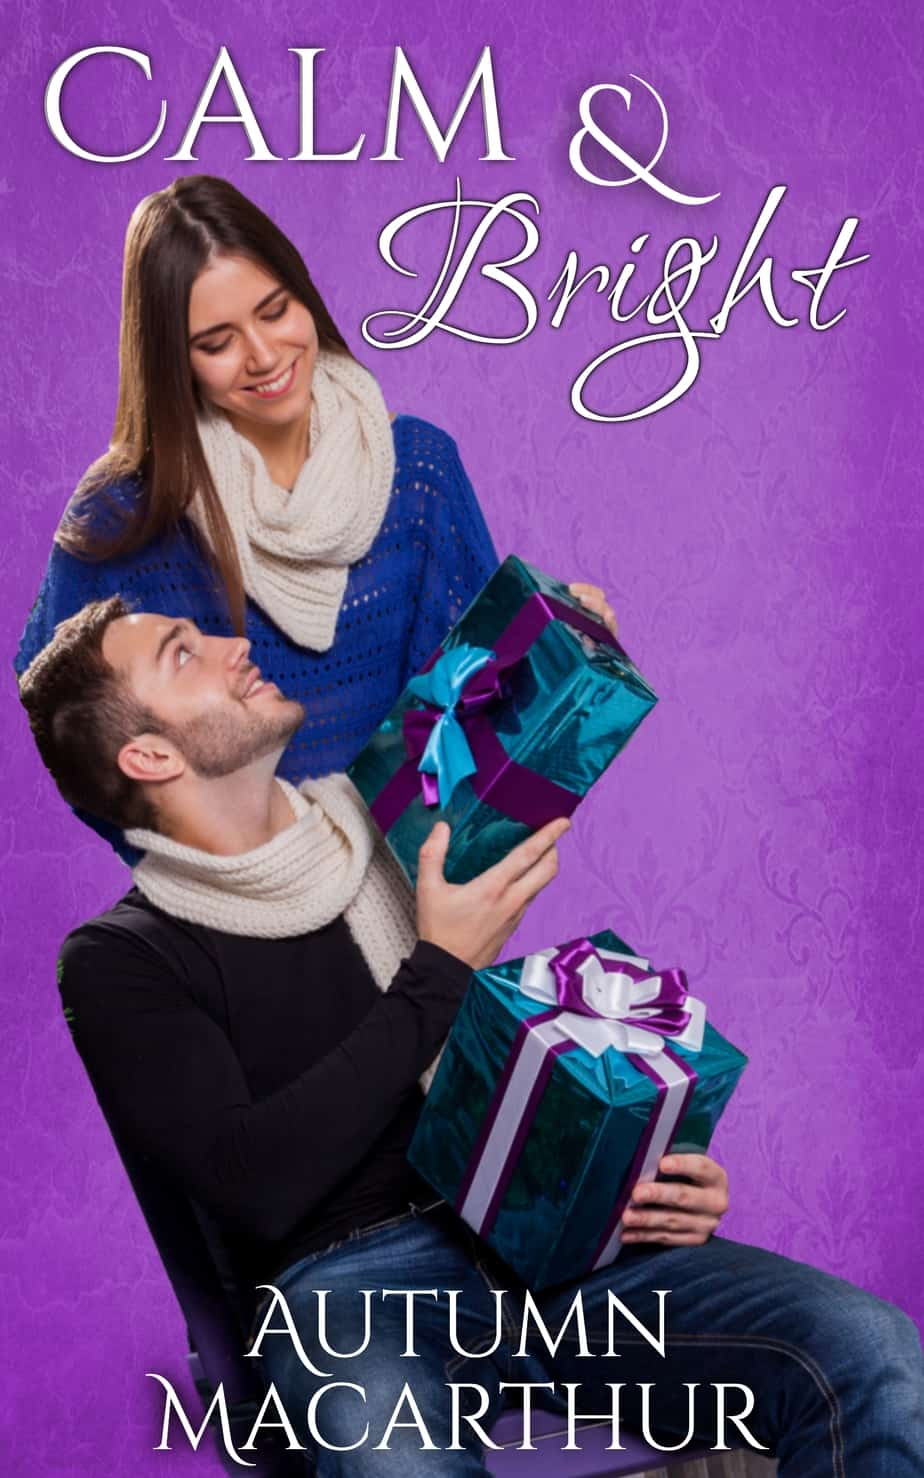 Cover image for sweet and clean Idaho set Christmas romance novella, Calm & Bright, by Christian author Autumn Macarthur